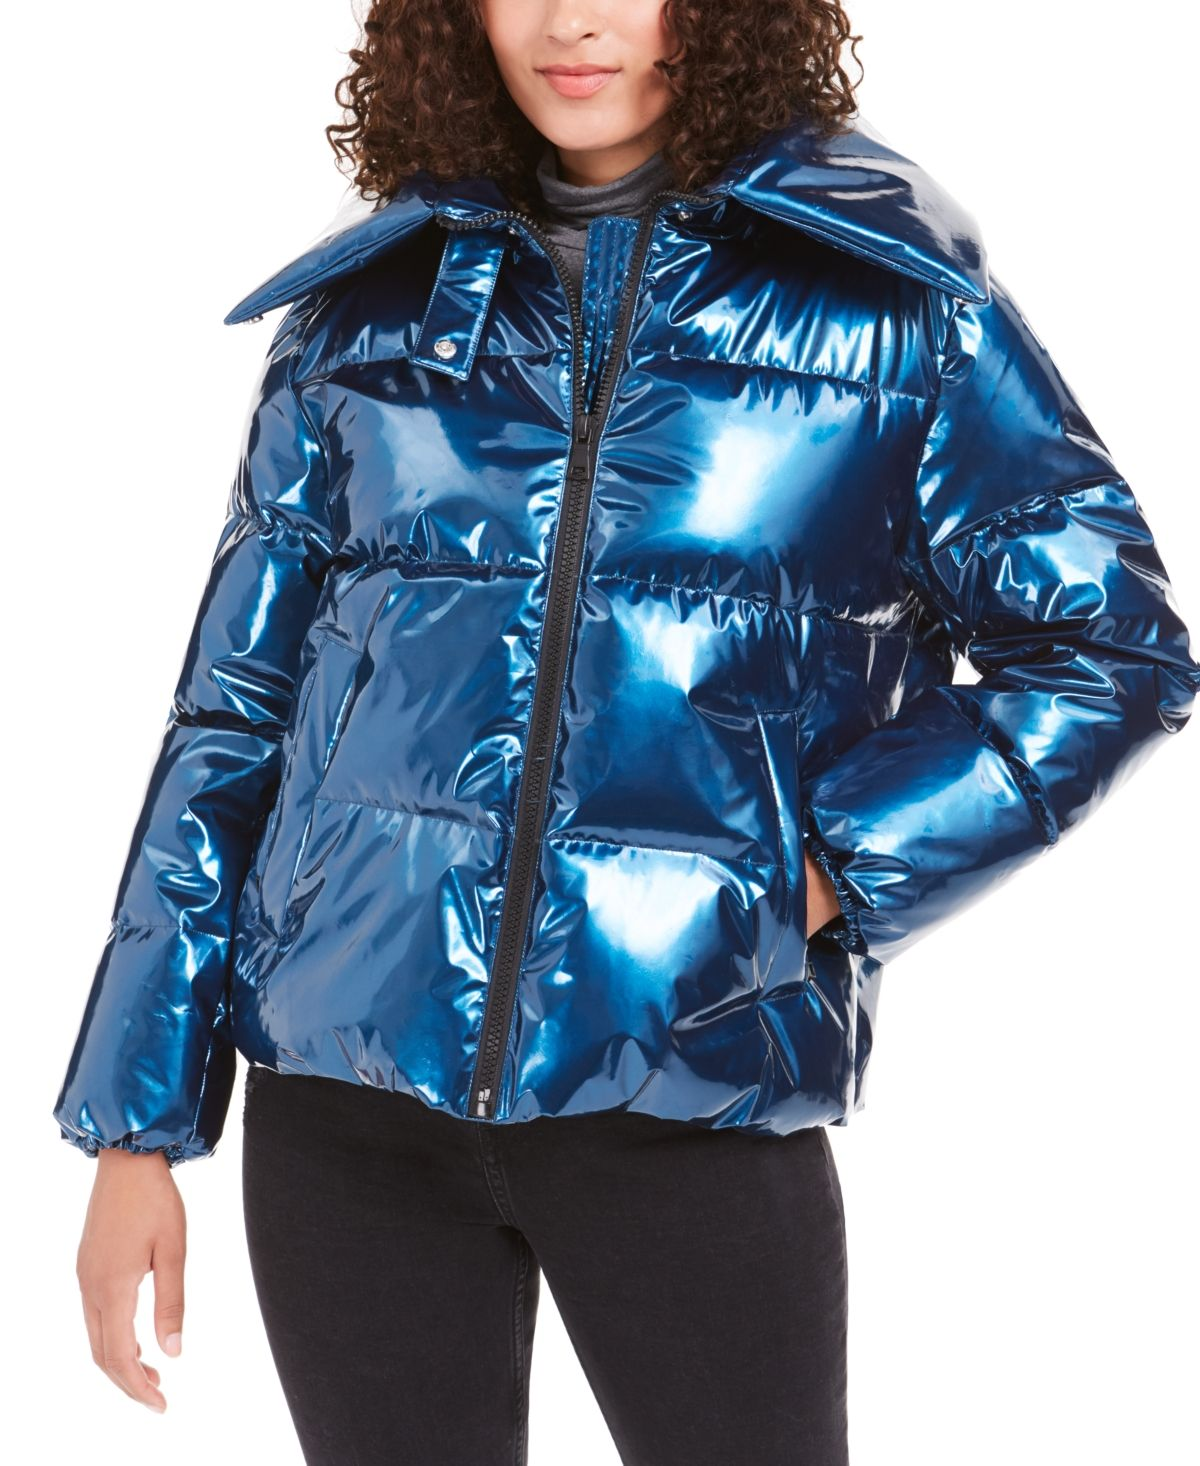 Pin By Edelsteen Kat On Shiny Jackets Kendall And Kylie Clothing Girls Puffer Jacket Puffer Coat [ 1466 x 1200 Pixel ]